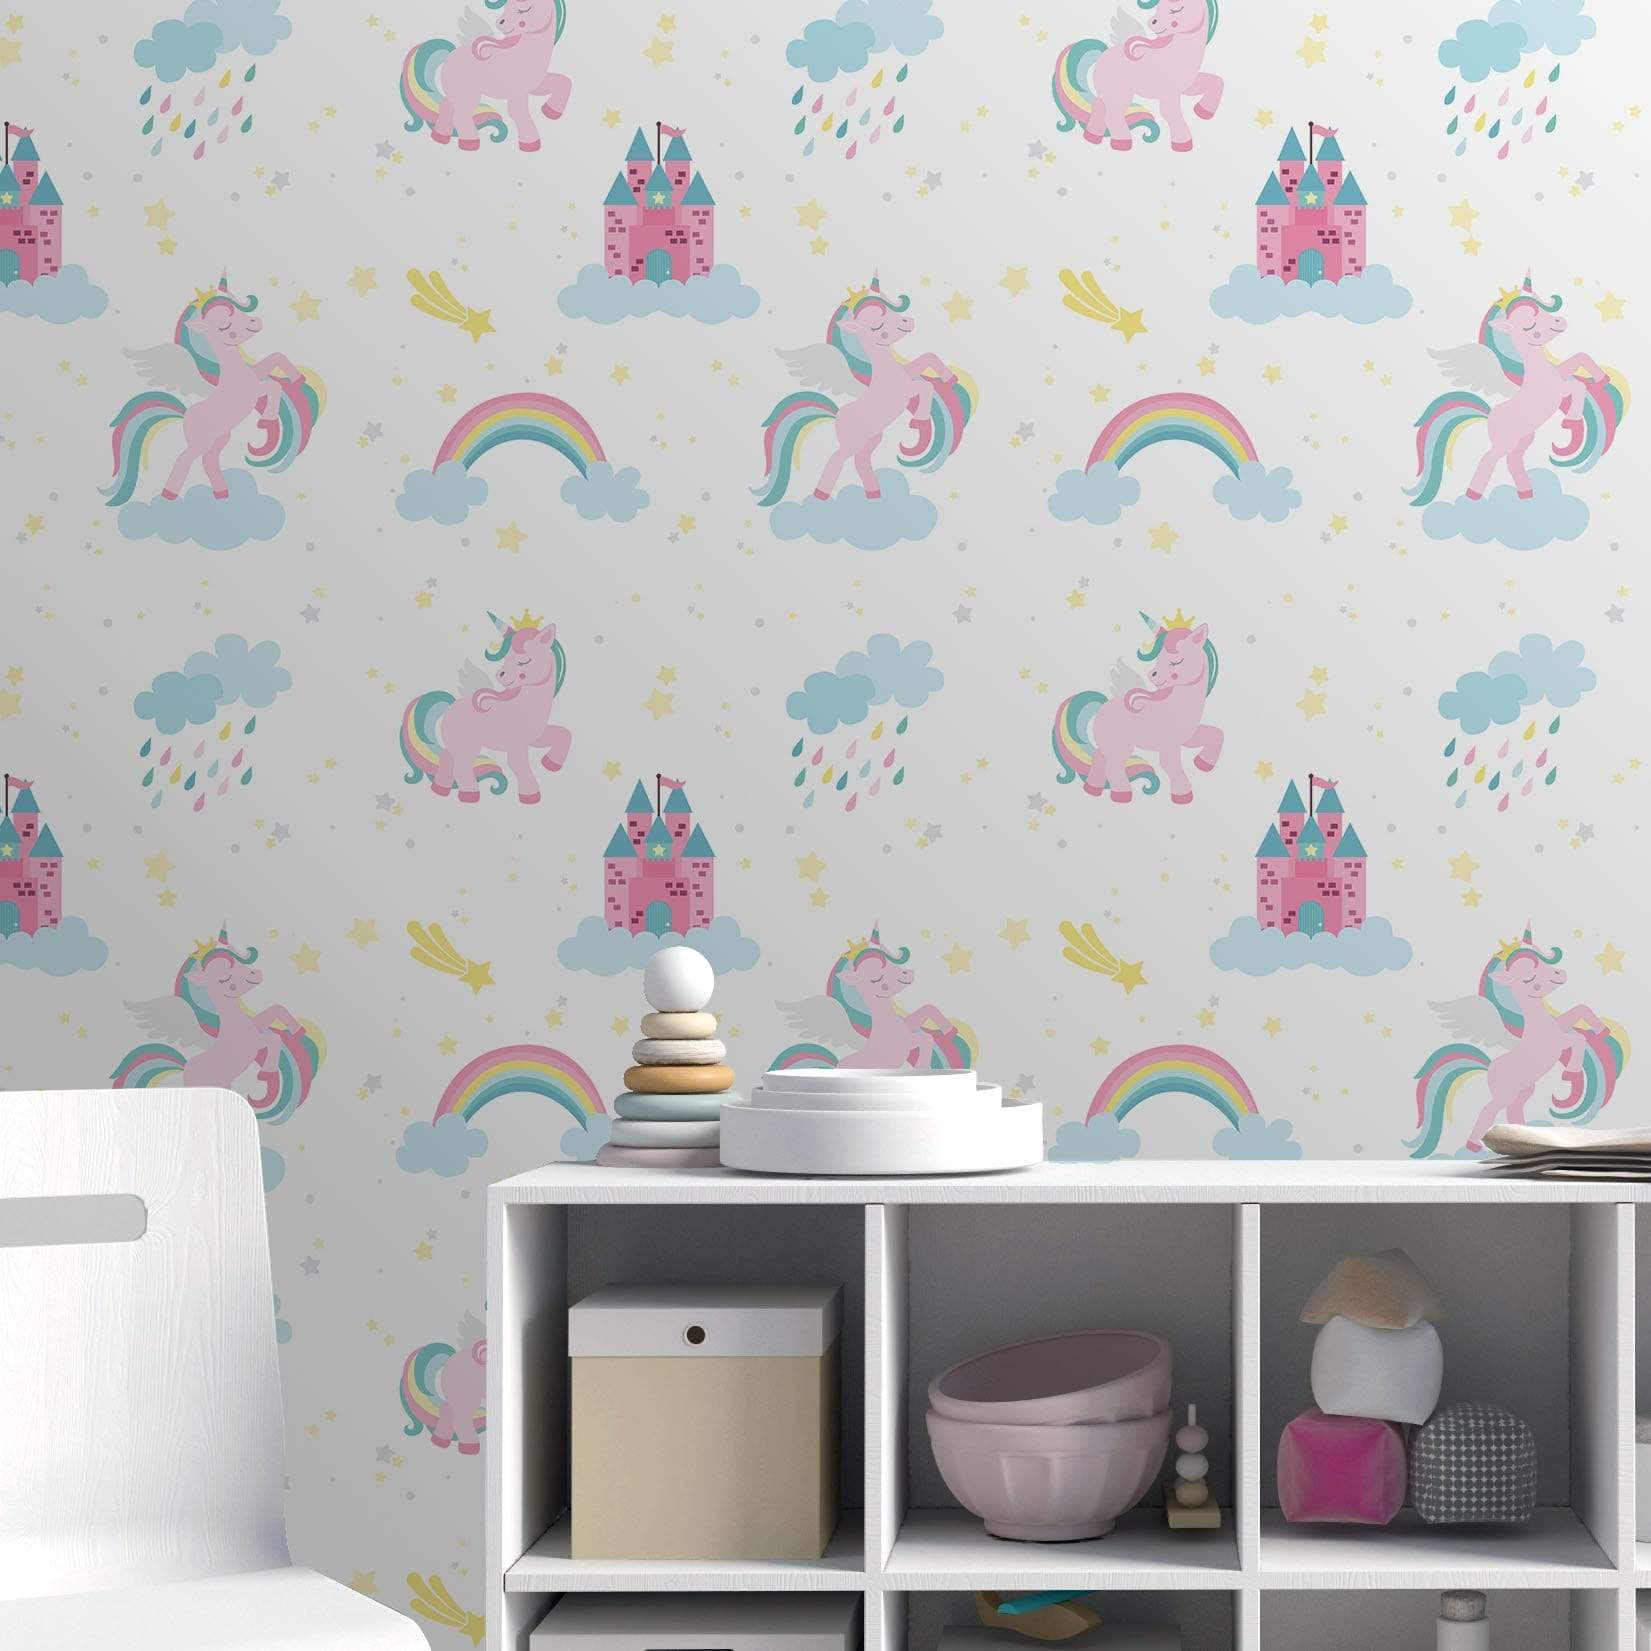 kids-wallpaper 10 Cute Ways to Use Removable Wallpaper for Your Kid's Bedroom